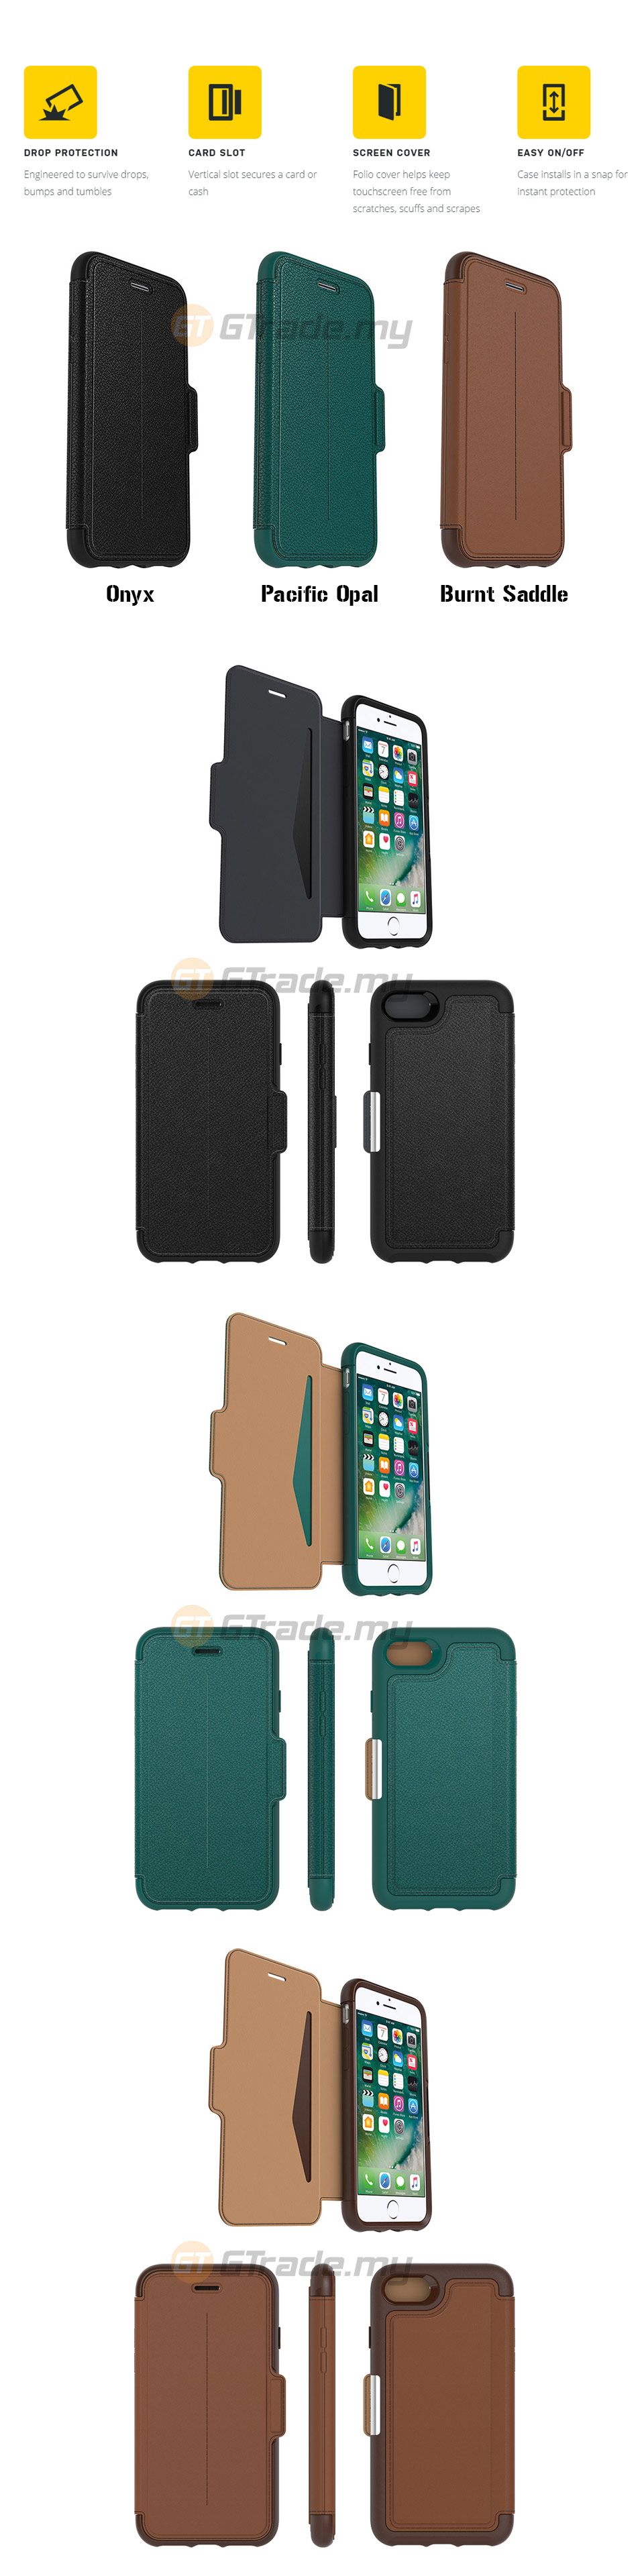 otterbox-strada-leather-case-apple-iphone-7-p